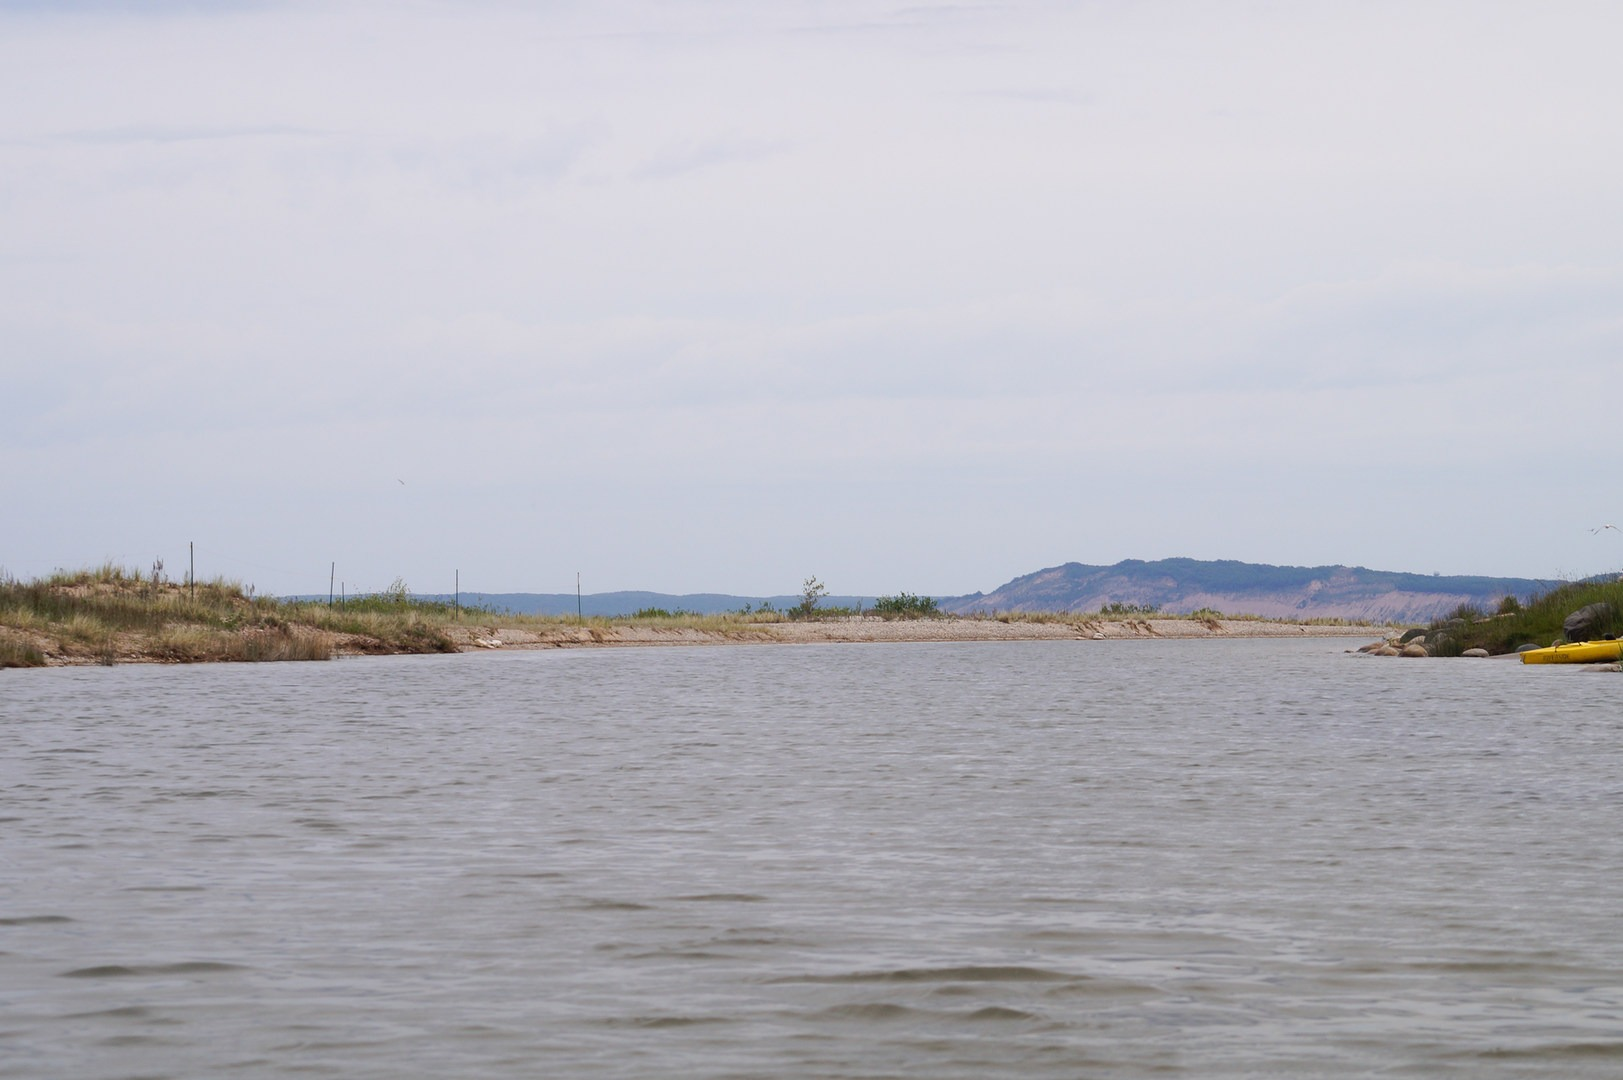 ... Nearing the mouth of the river flowing into Lake Michigan with a glimpse of Empire Bluff